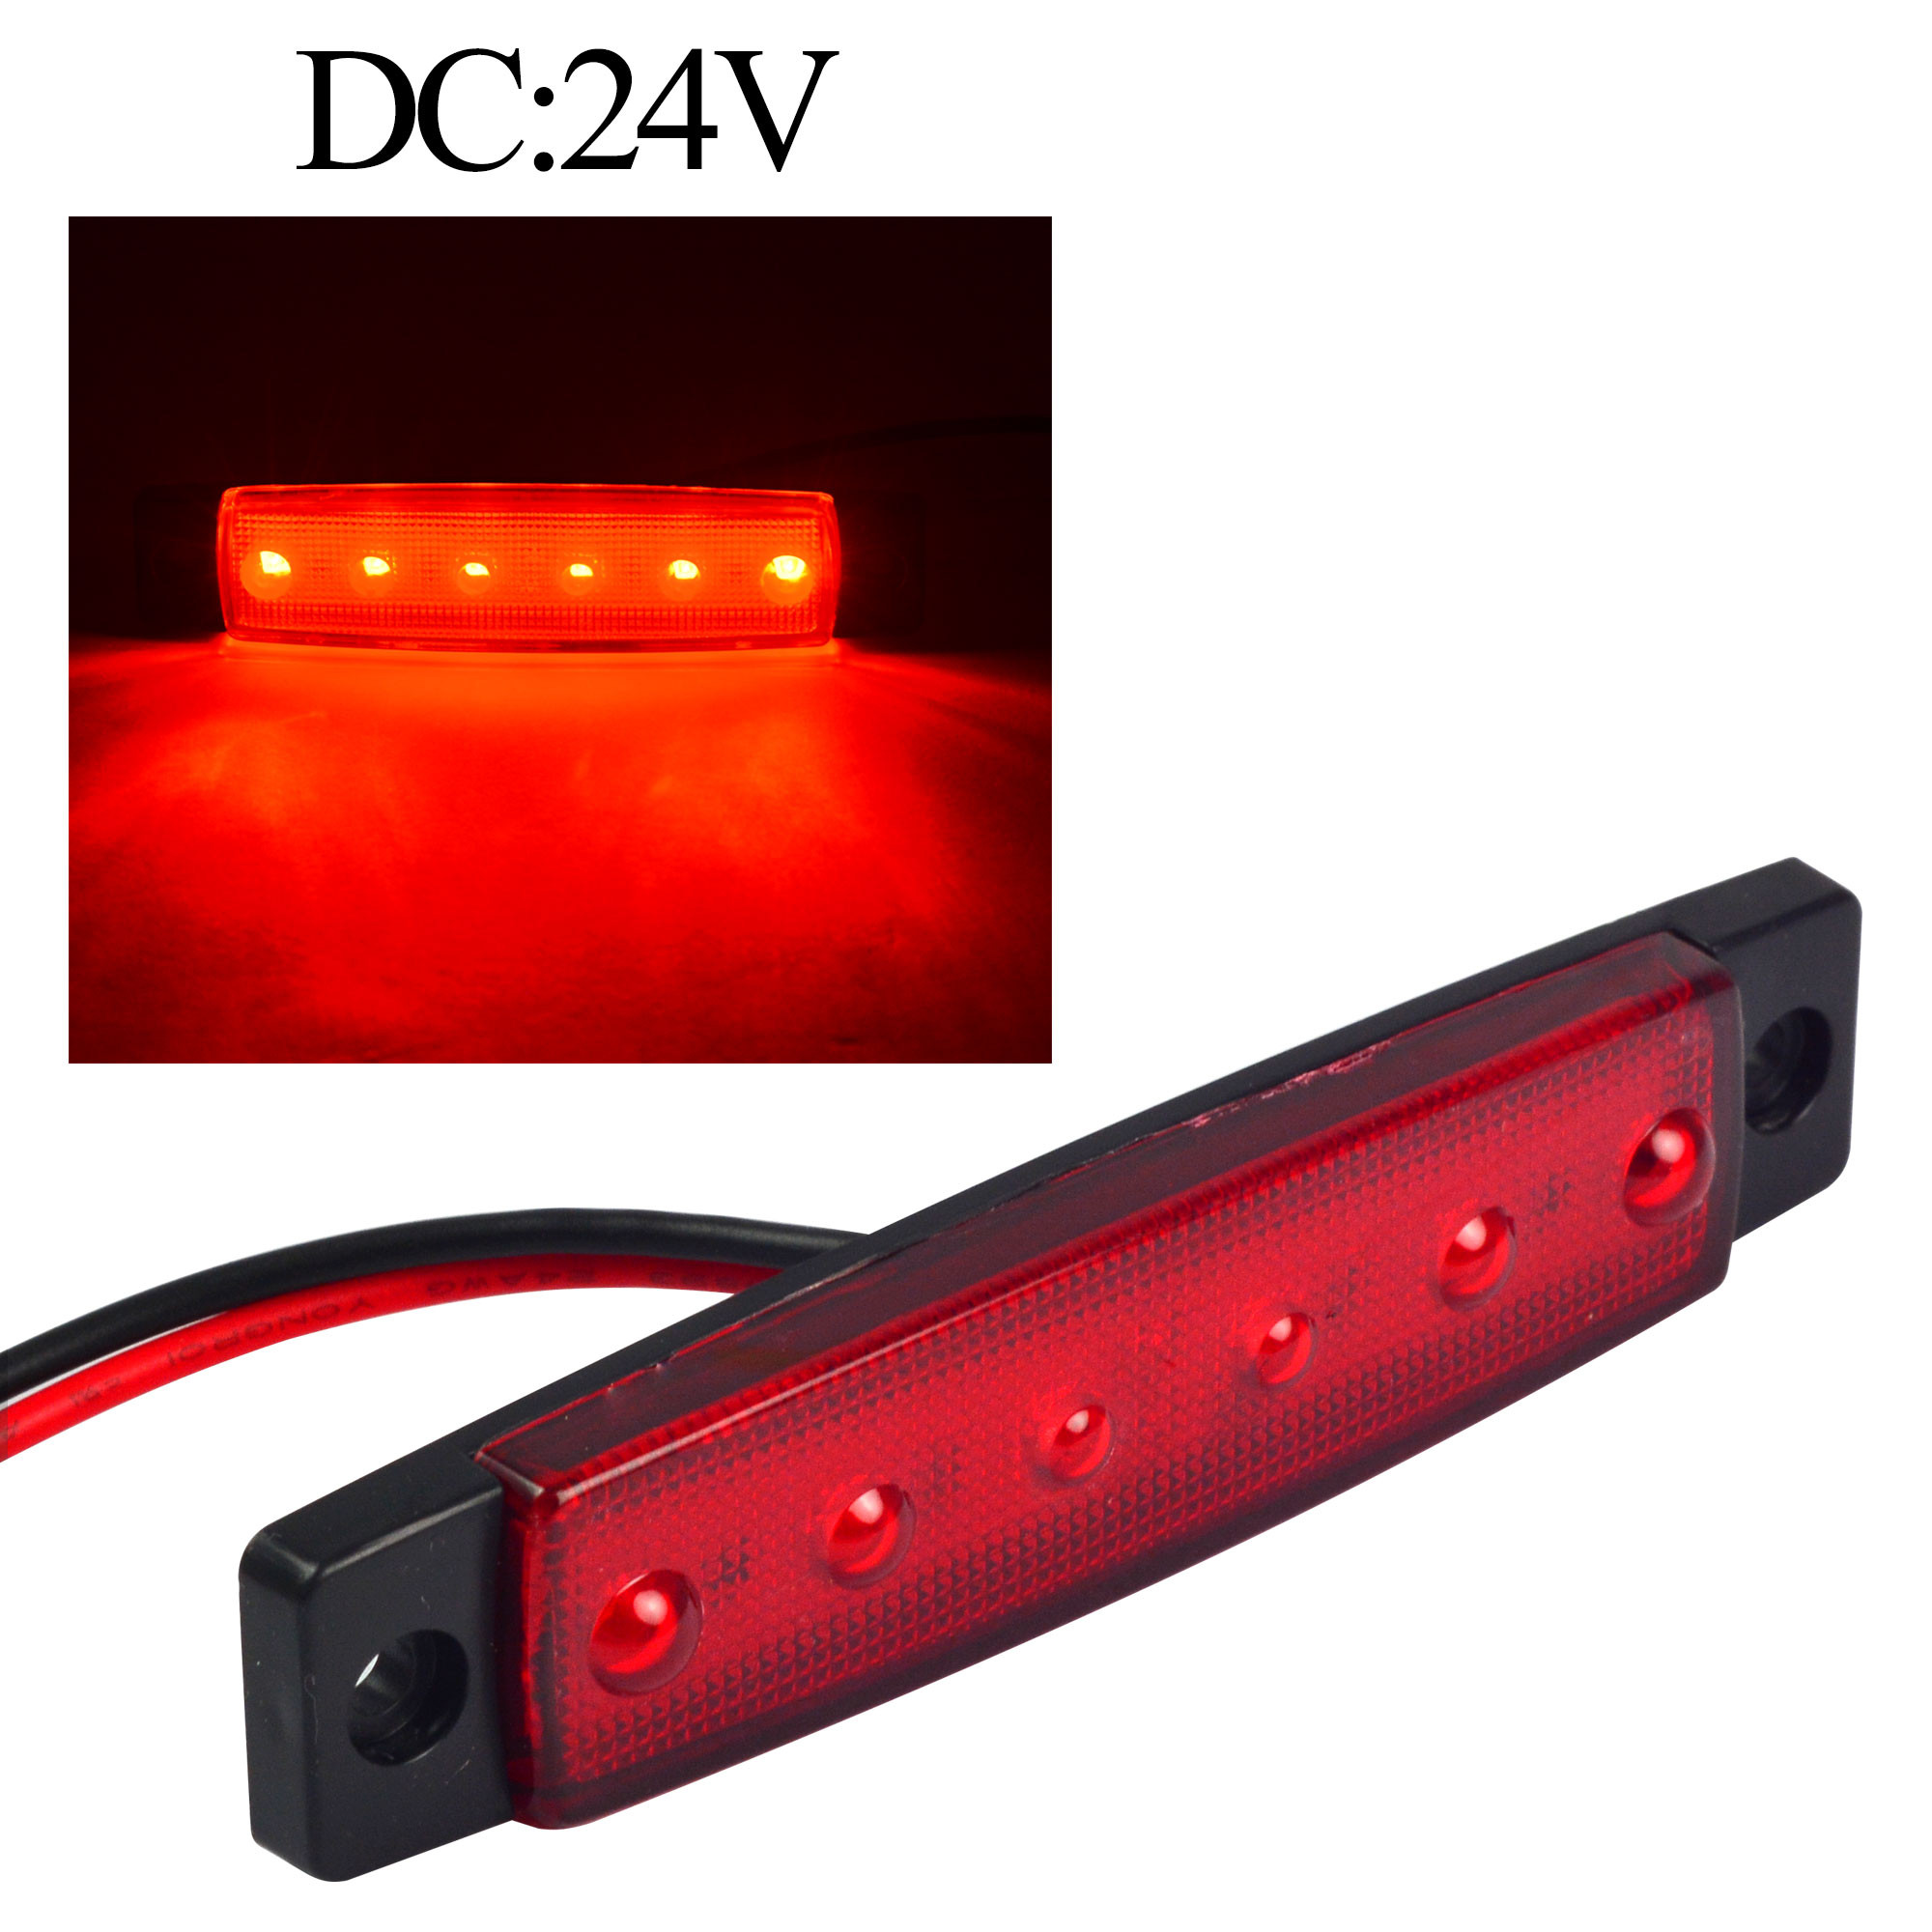 MENGS® 1Pair 0.5W Waterproof LED Side Marker Light 6x 2835 SMD for most Buses, trucks, trailers DC 24V - Red